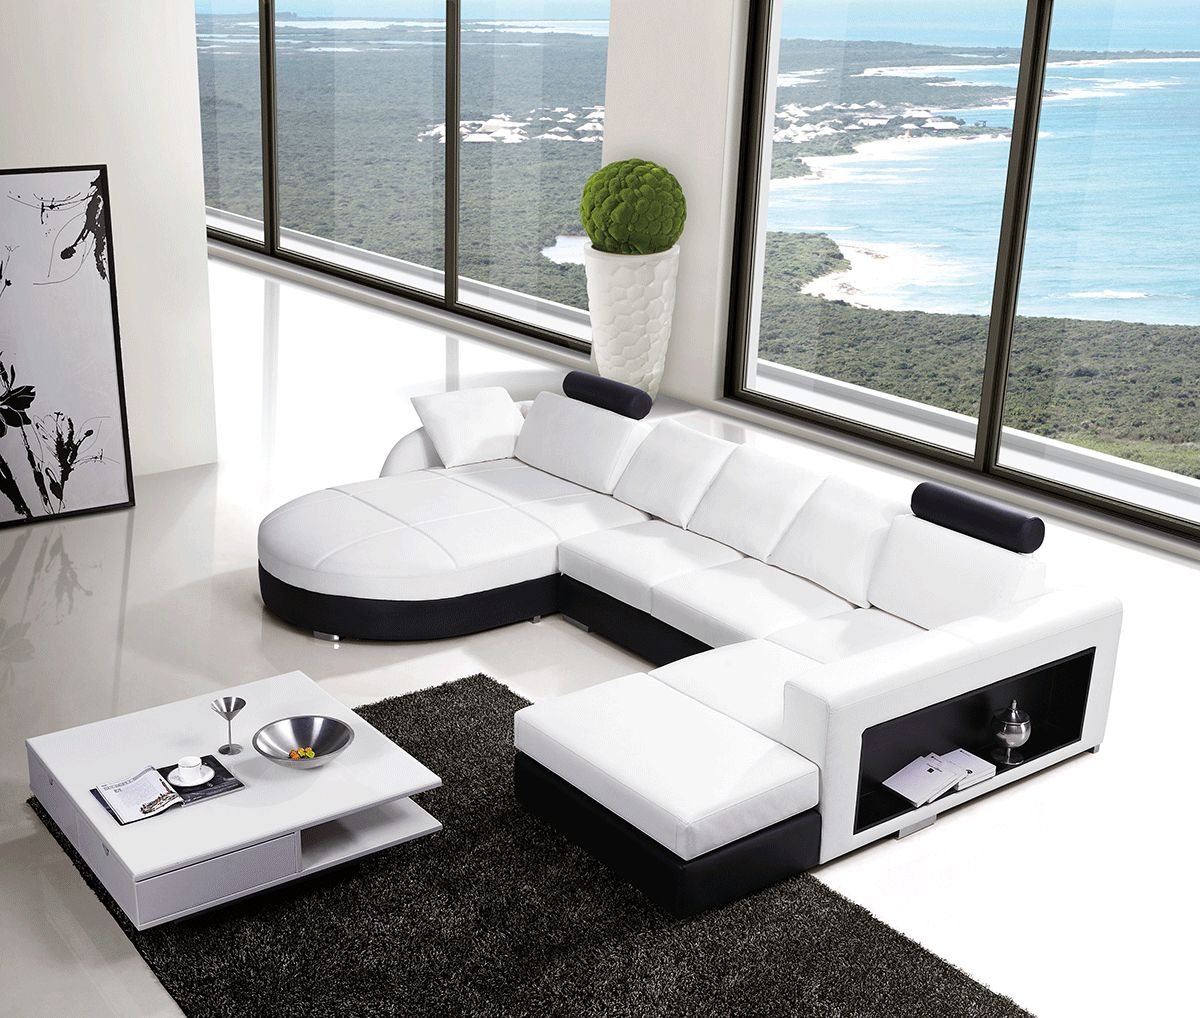 huge italian white leather modern sectional sofa set malaysia large u and l sectionals corner design couch